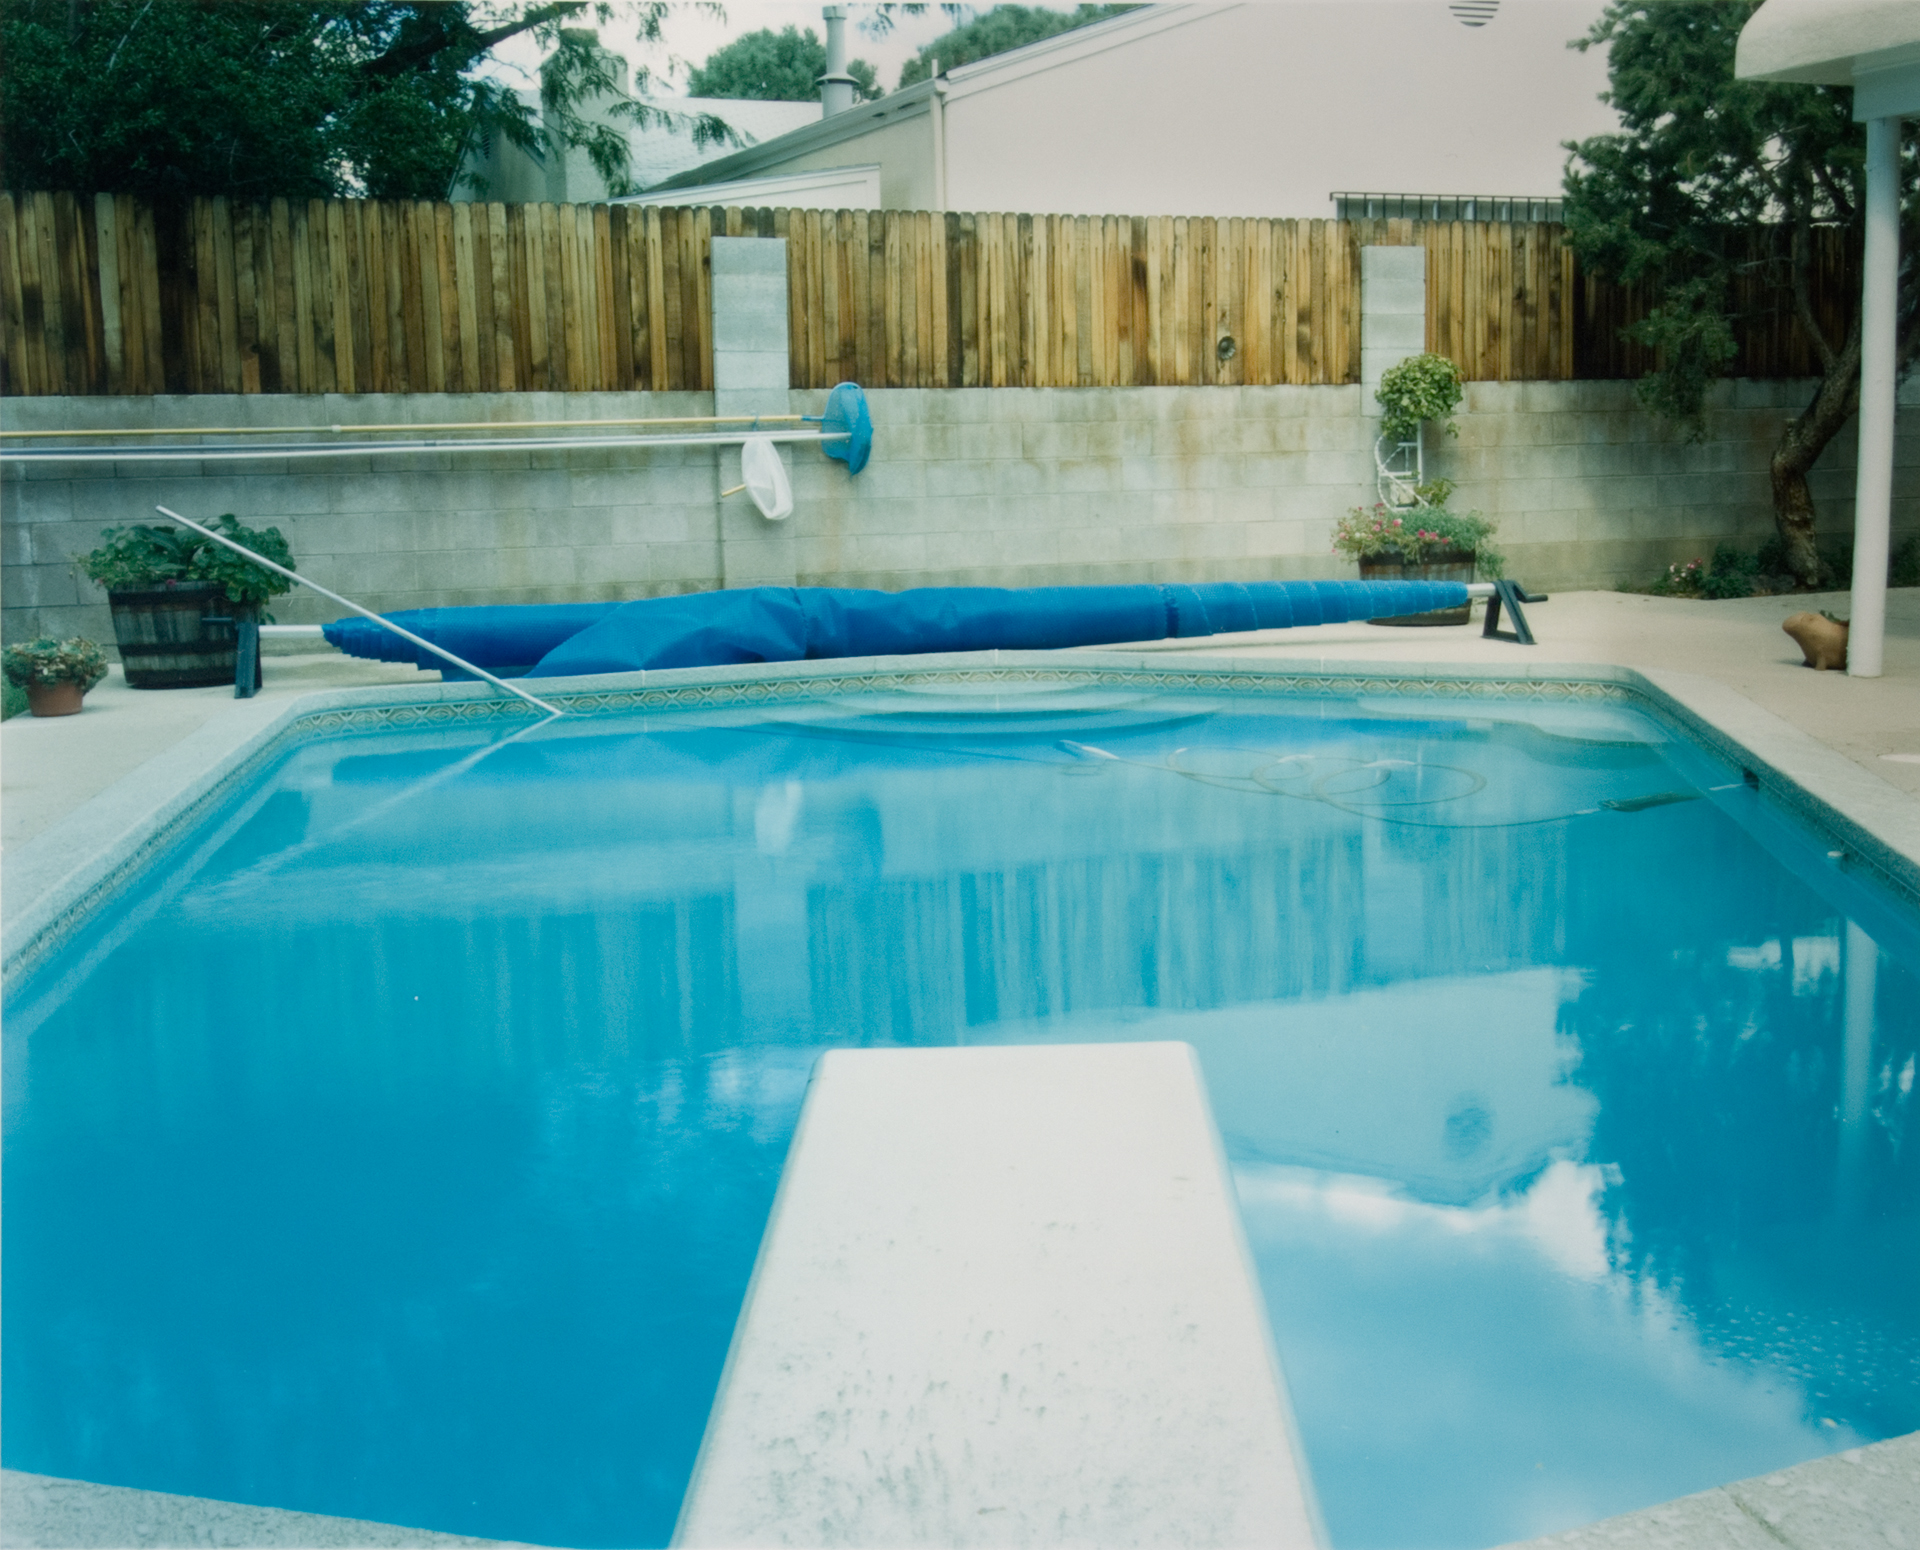 Pool 6 , Chromogenic Print, 8 x10 on 16 x 20 paper, 2001